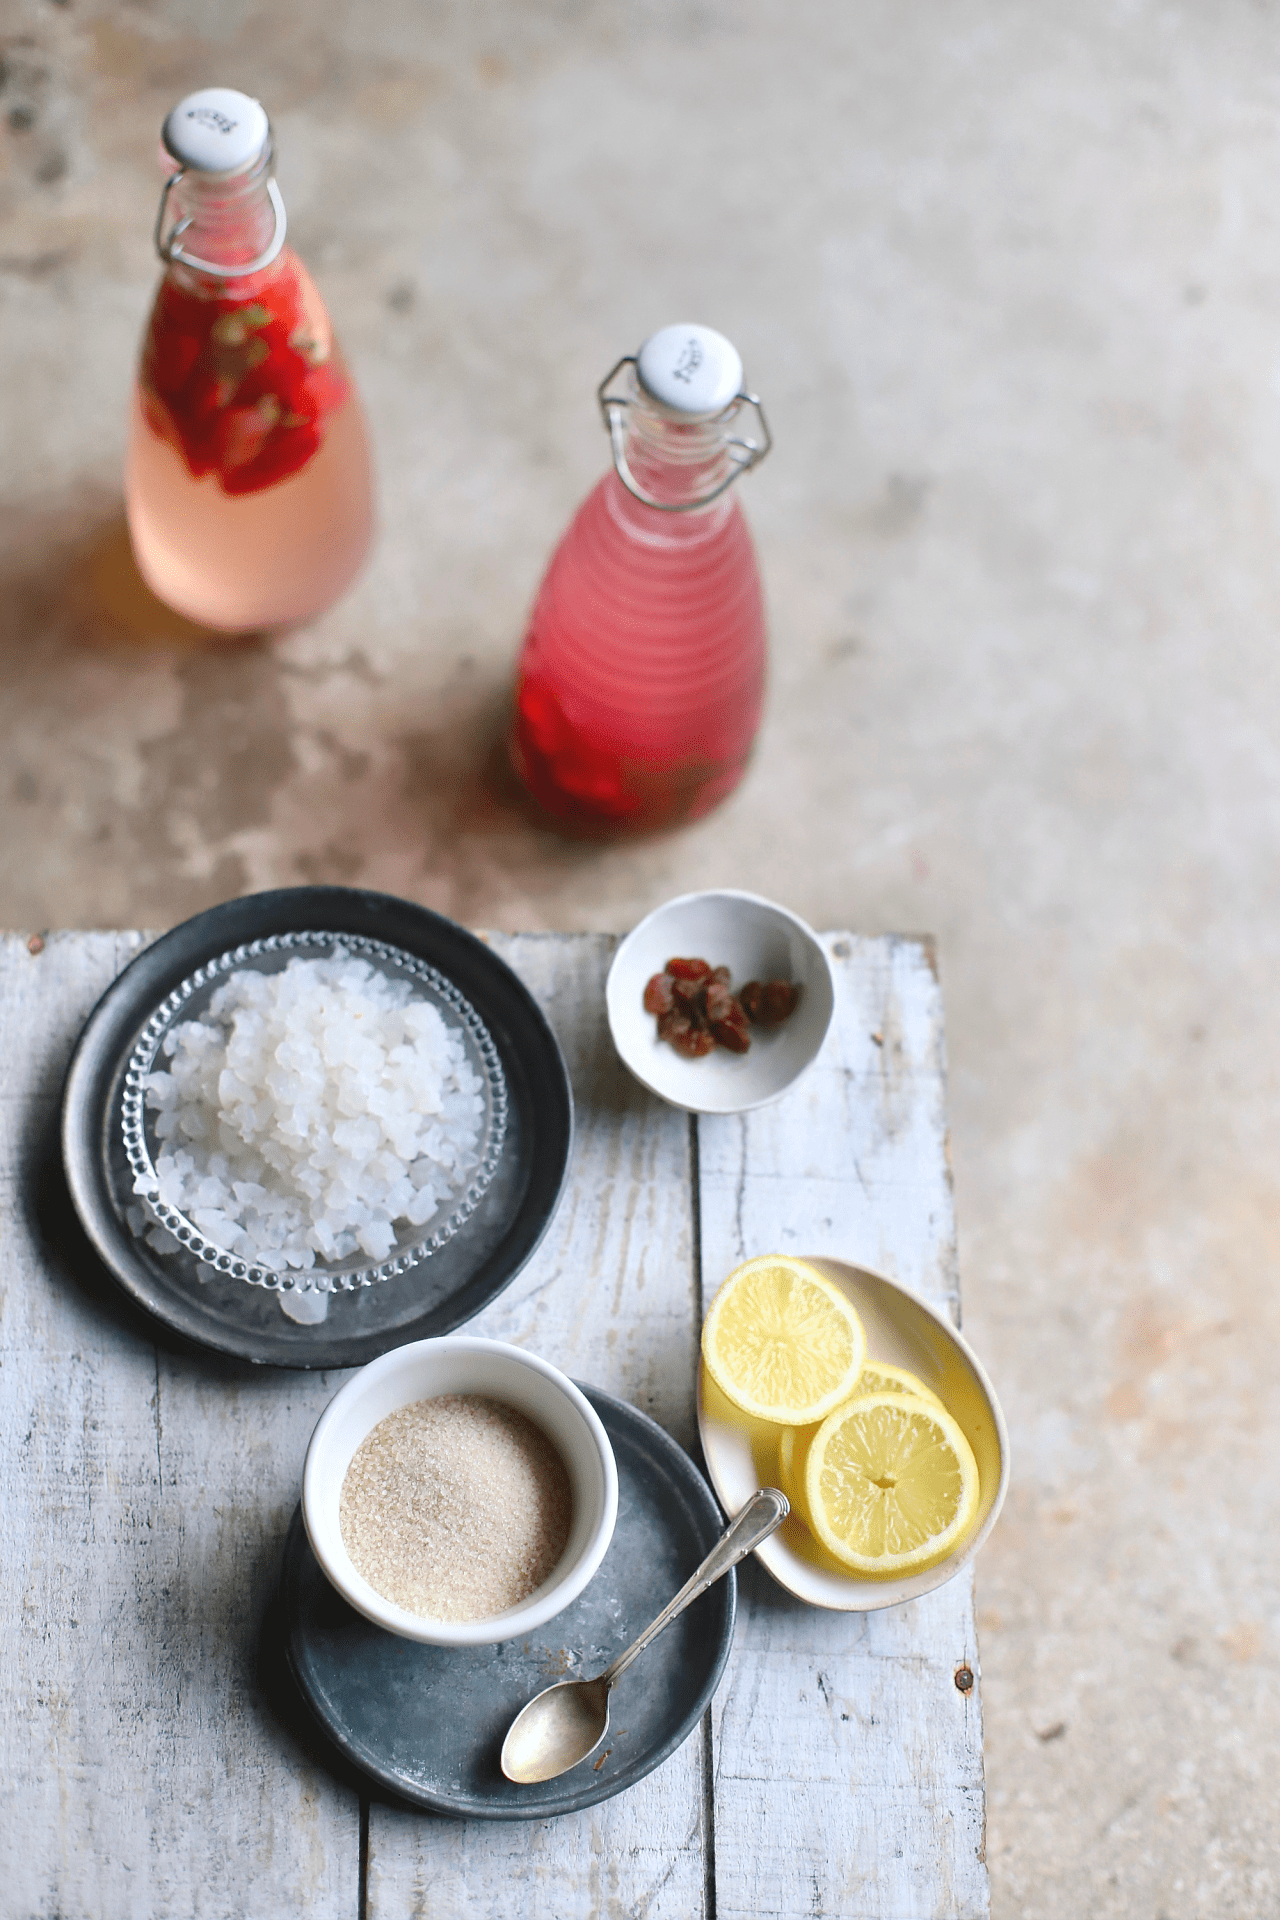 The simplicity of water kefir - fermented water! - explained. Plus an in-depth, step-by-step guide to making this nutritious, probiotic, gut health hero. This drink is a great non-dairy alternative to milk kefir. #guthealth #kefir #recipe